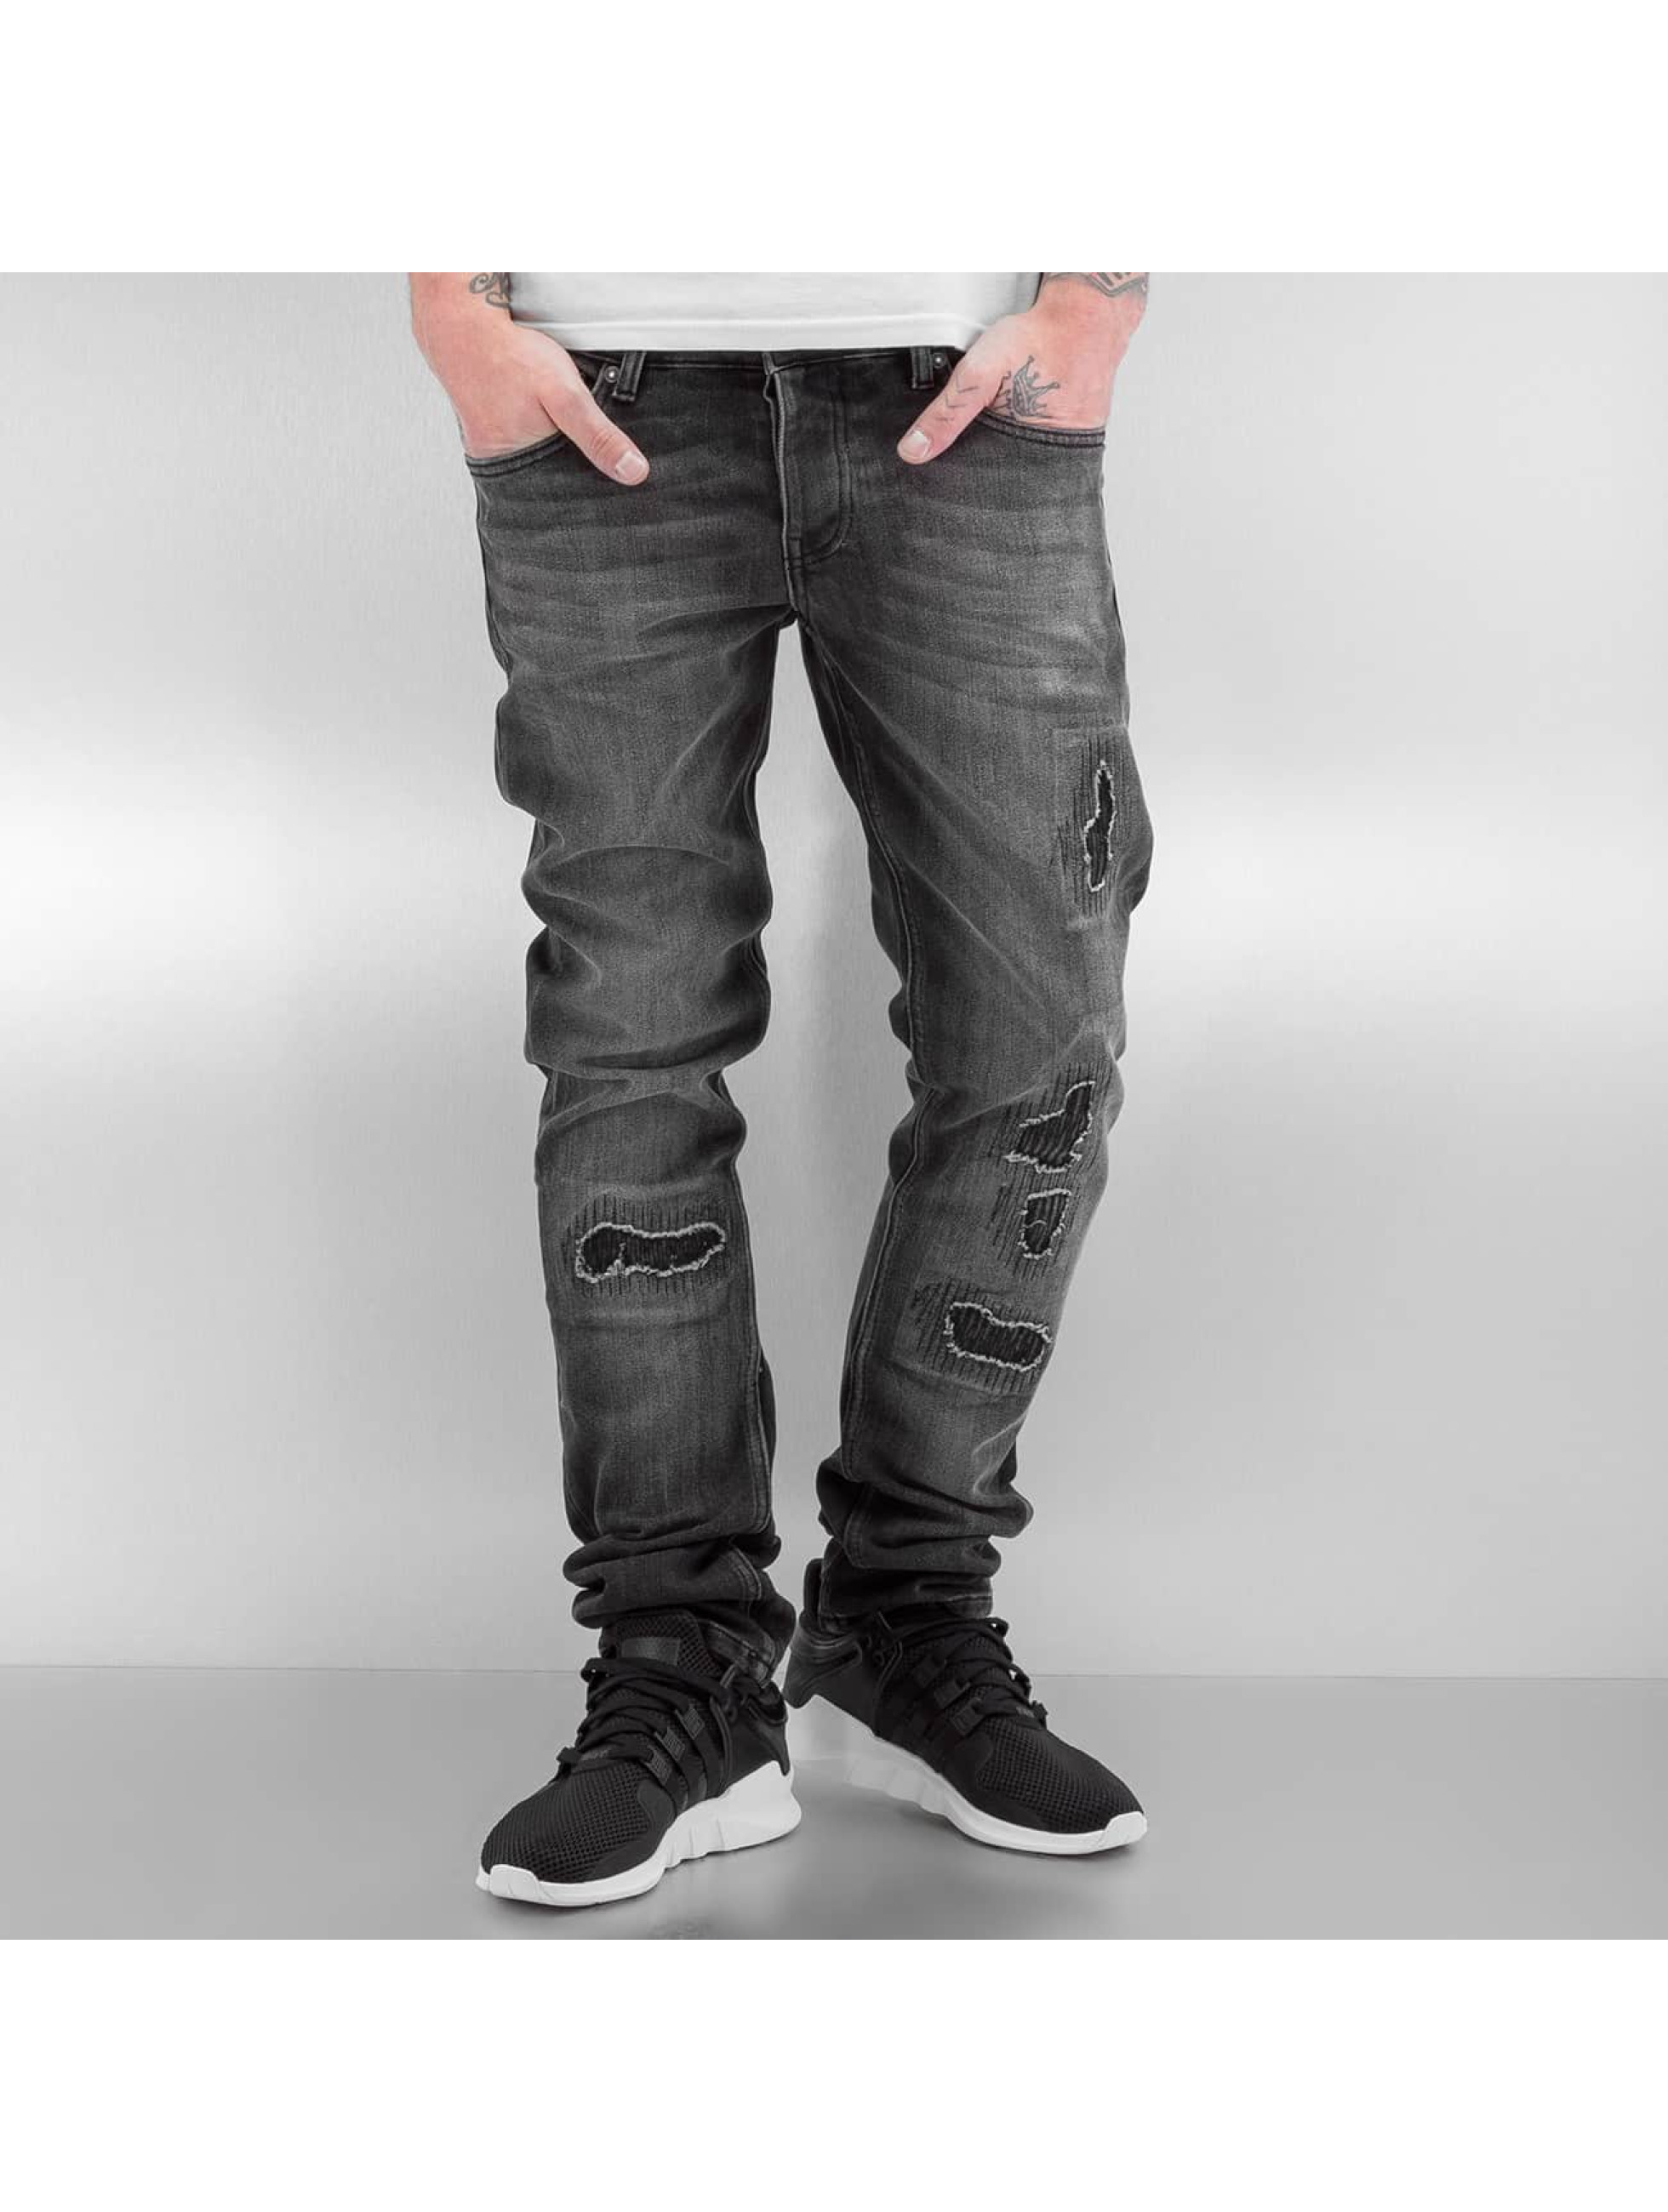 2Y / Slim Fit Jeans Ixelles in grey W 32